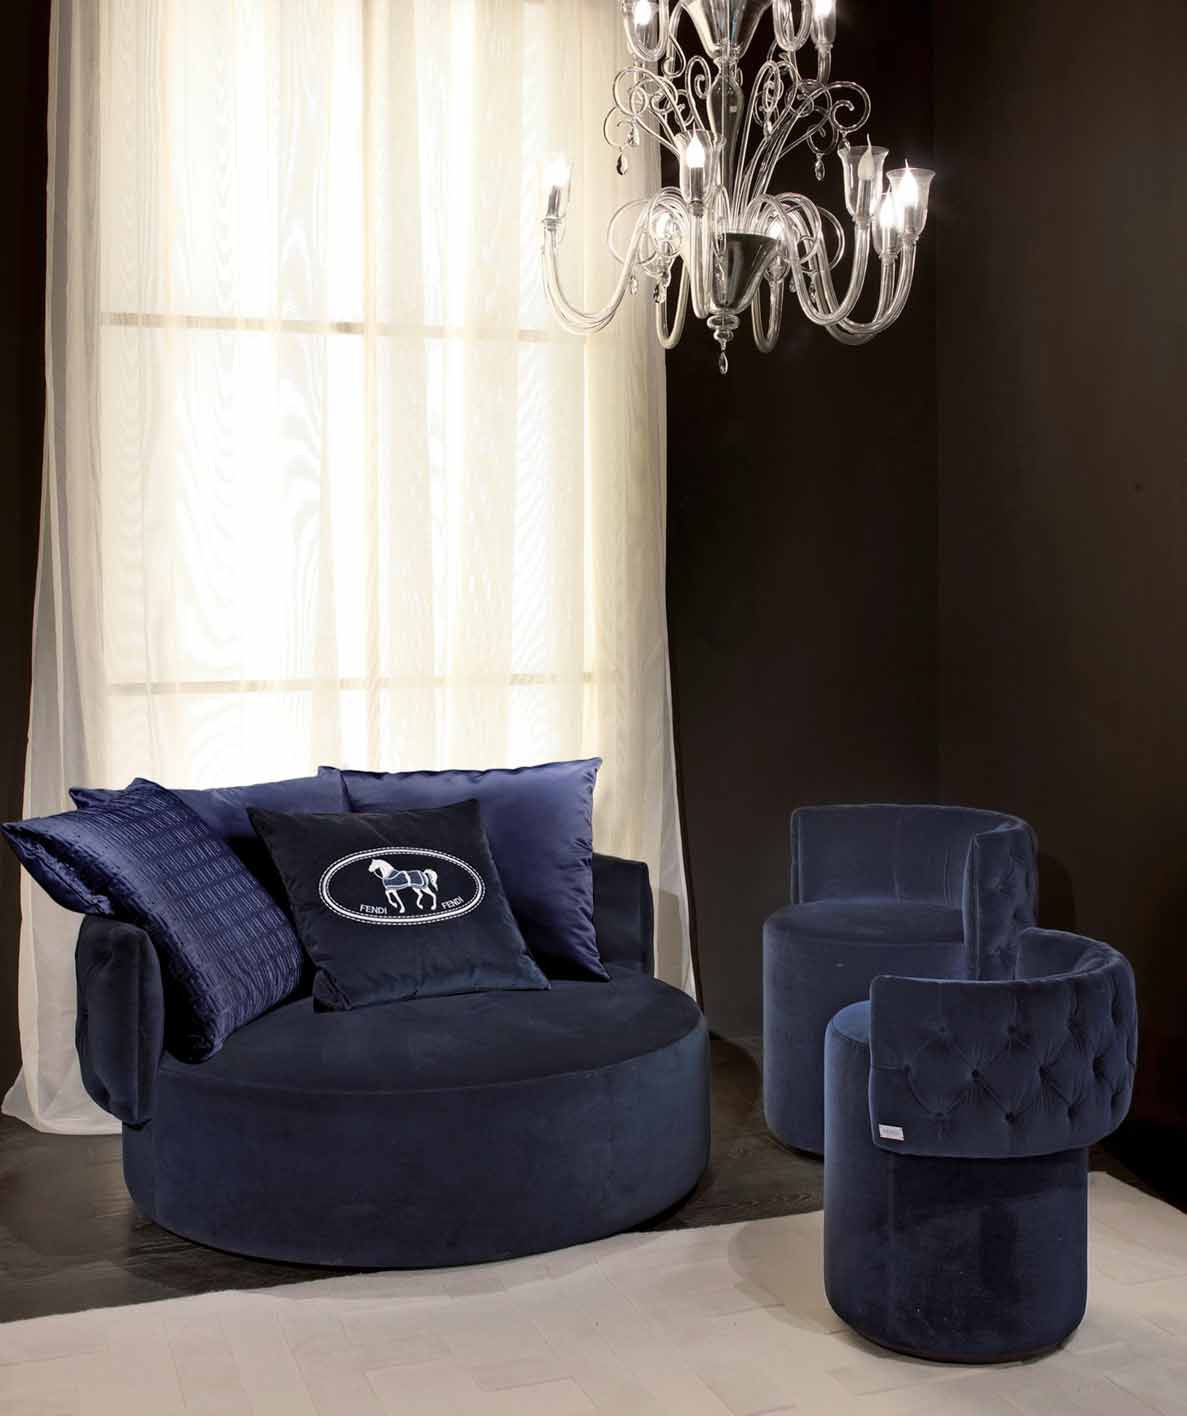 Chair Efea Fendi Luxury furniture MR : 13965288537965w4000h3200 from www.luxuryfurnituremr.com size 1187 x 1416 jpeg 122kB